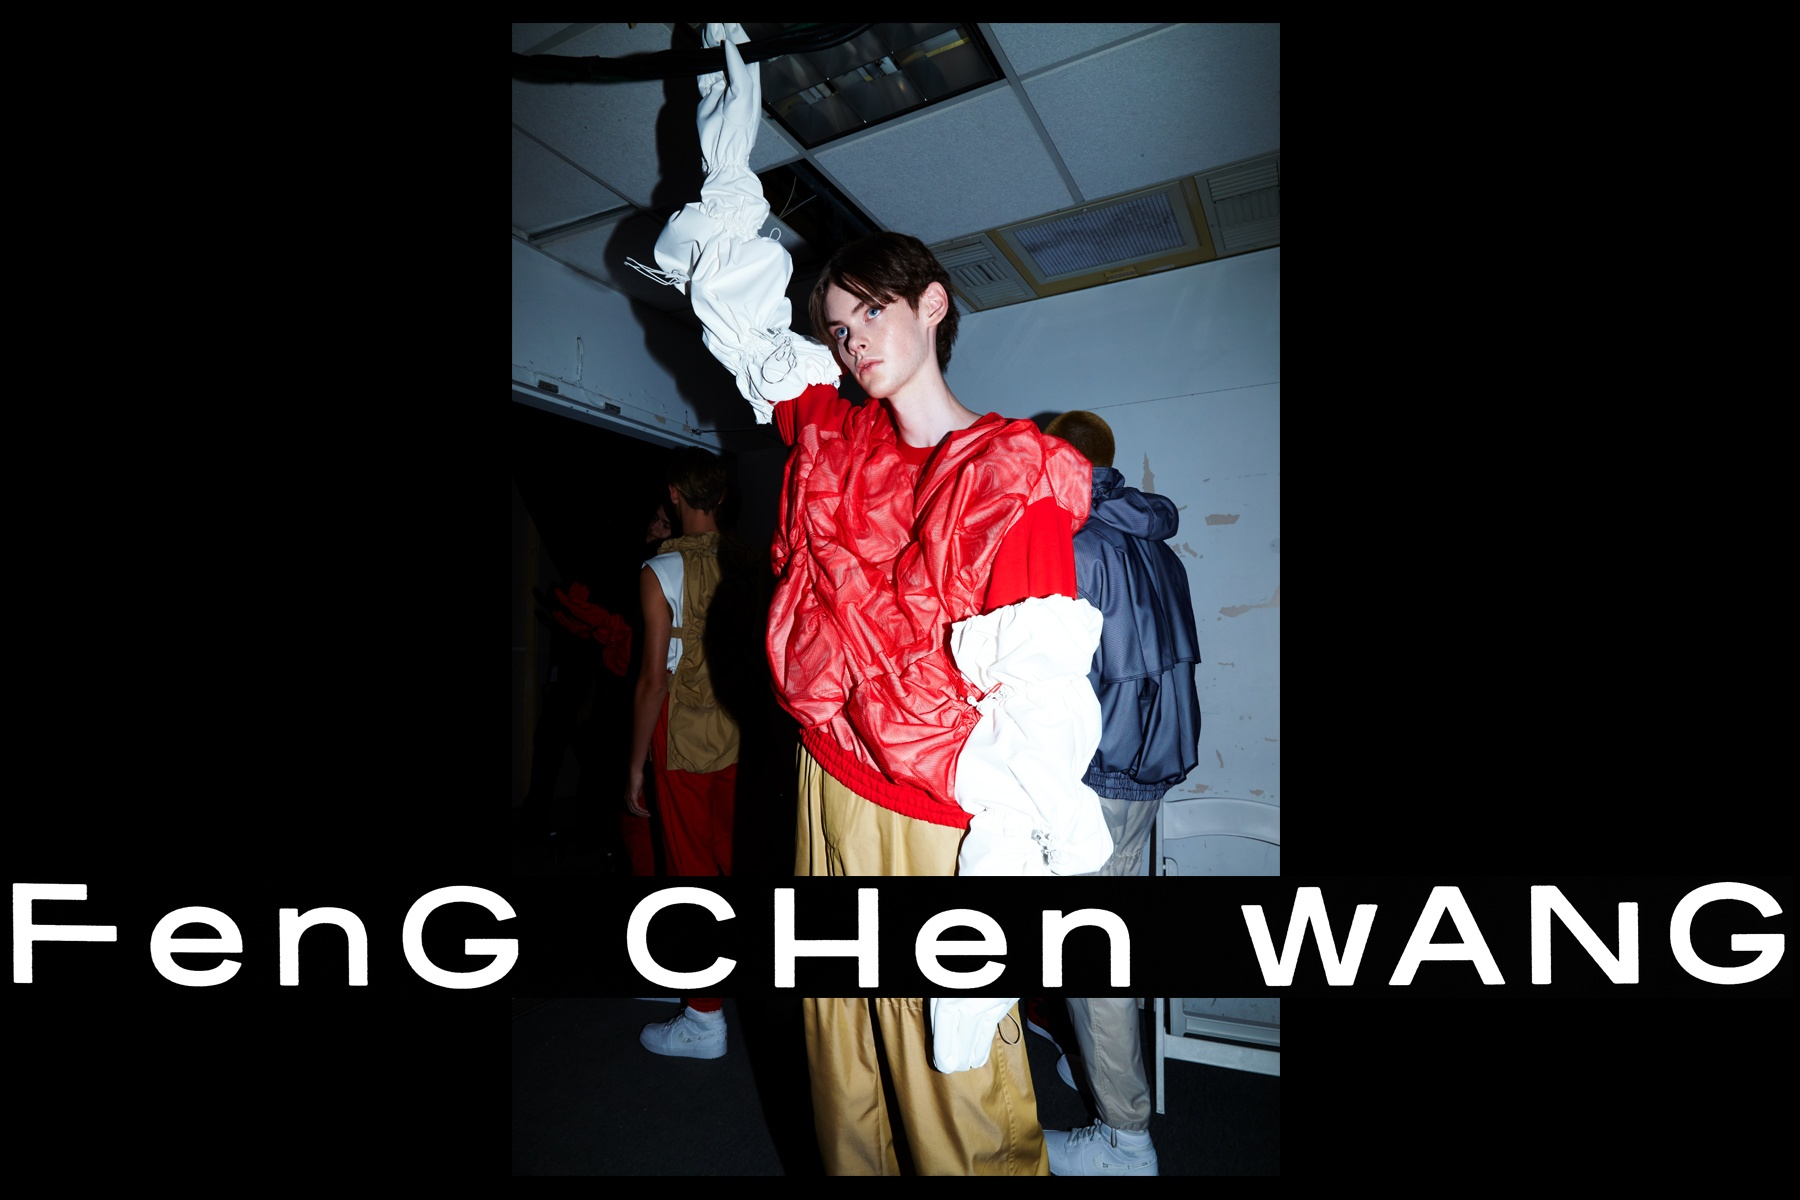 Feng Chen Wang menswear. S/S18. Photography by Alexander Thompson for Ponyboy magazine New York.